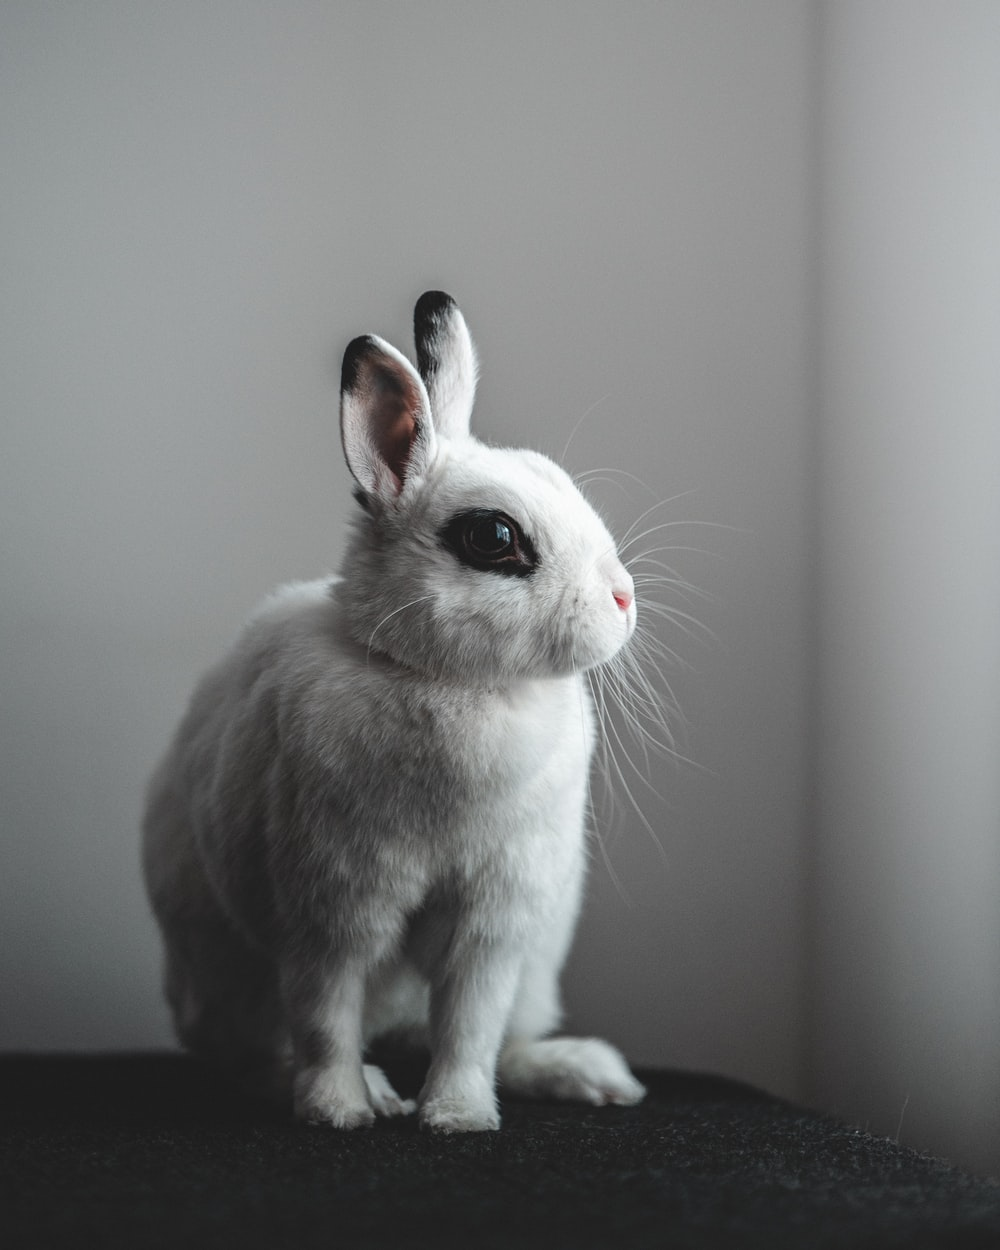 white and gray rabbit on black table